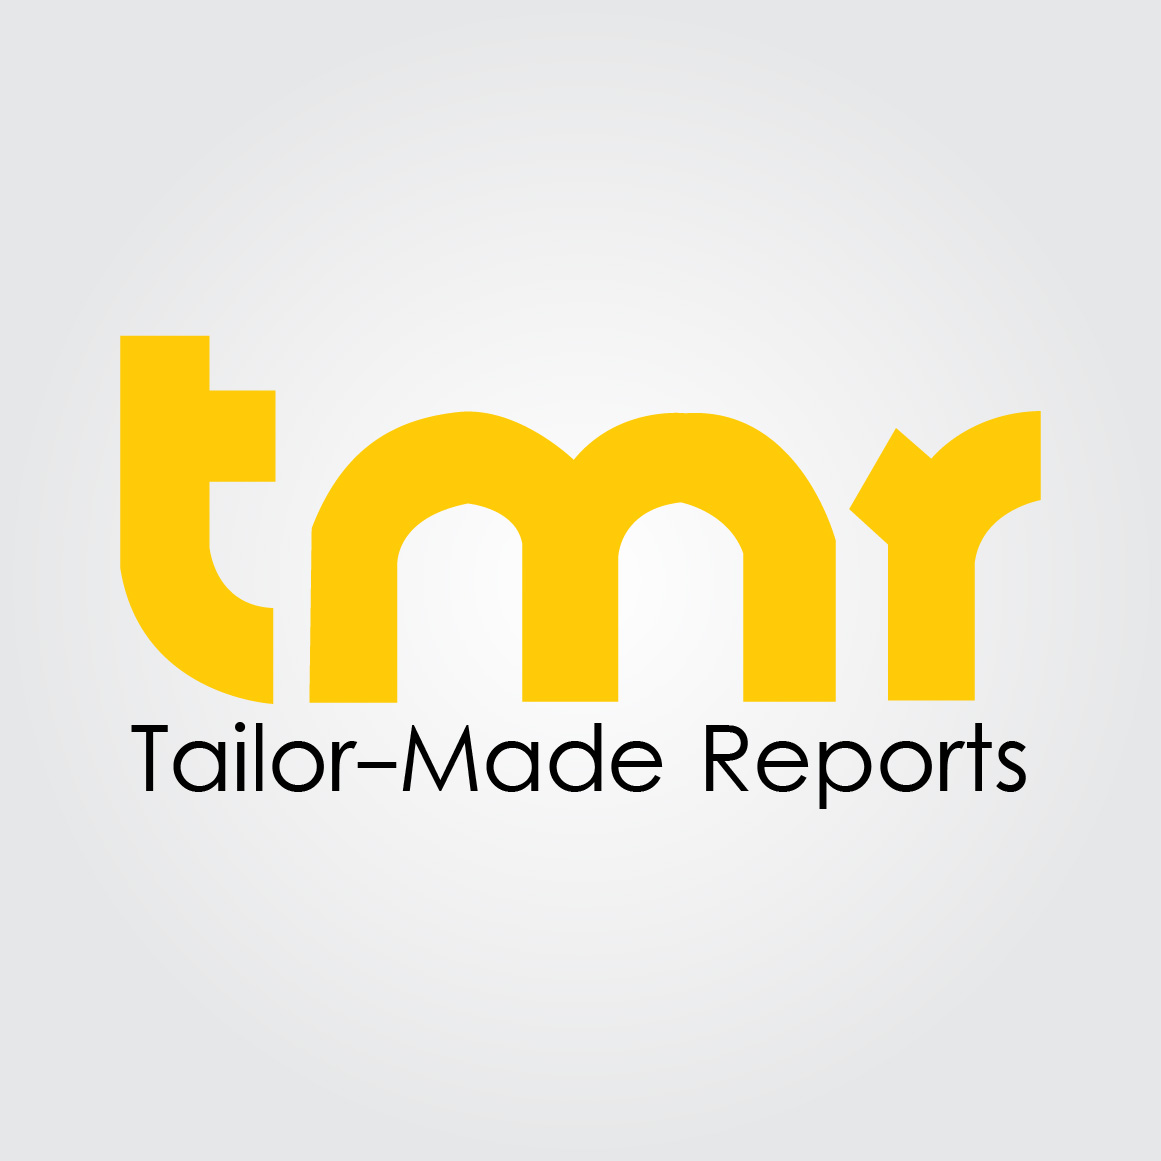 North America Cloud Content Delivery Network (CDN) Market is the key contributor to the global market | TMR Research Study